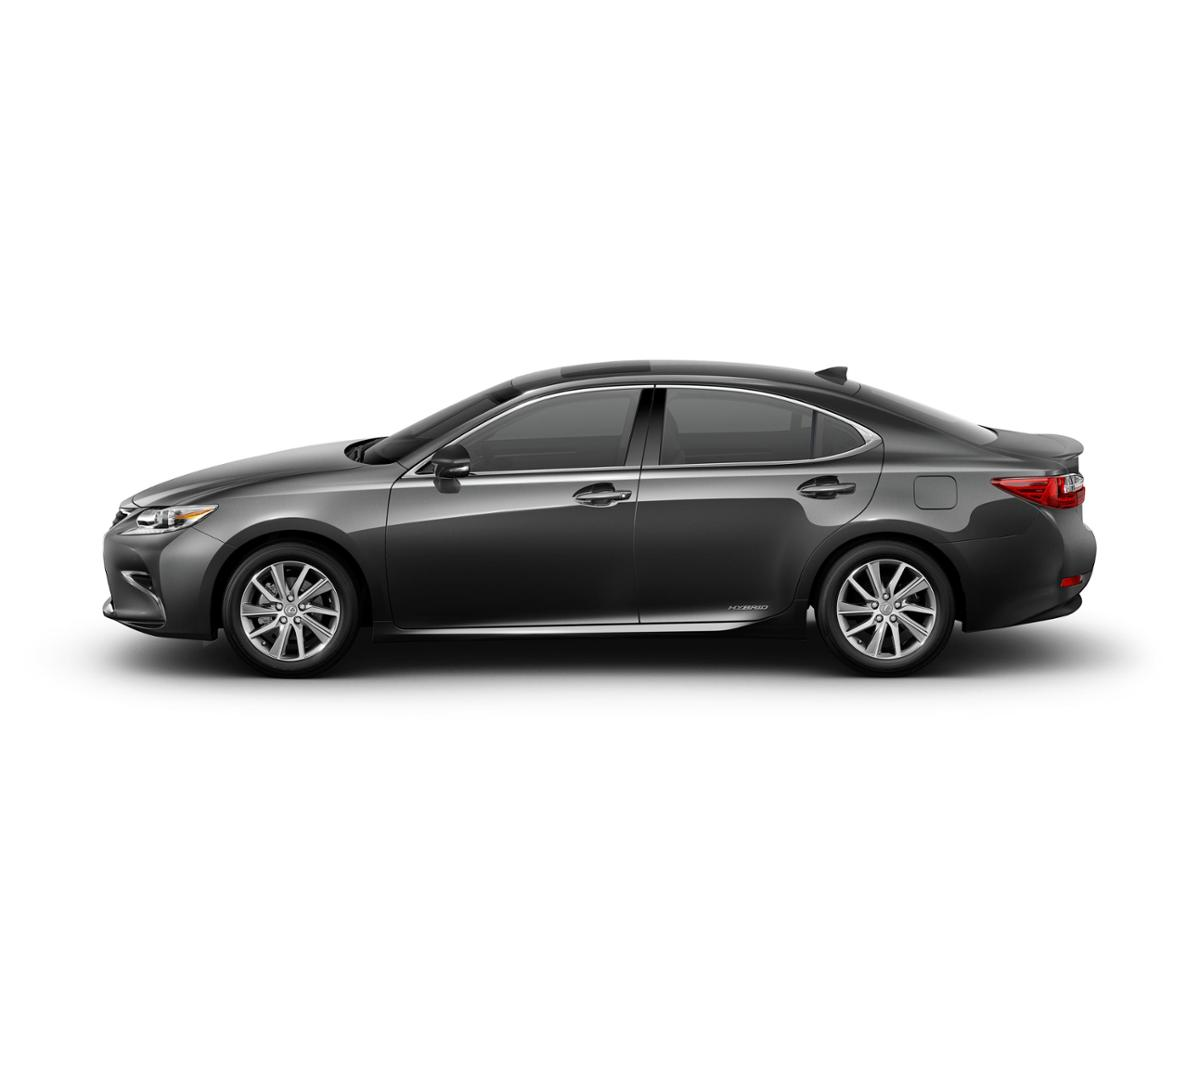 2018 Lexus ES 300h Vehicle Photo in Mission Viejo, CA 92692